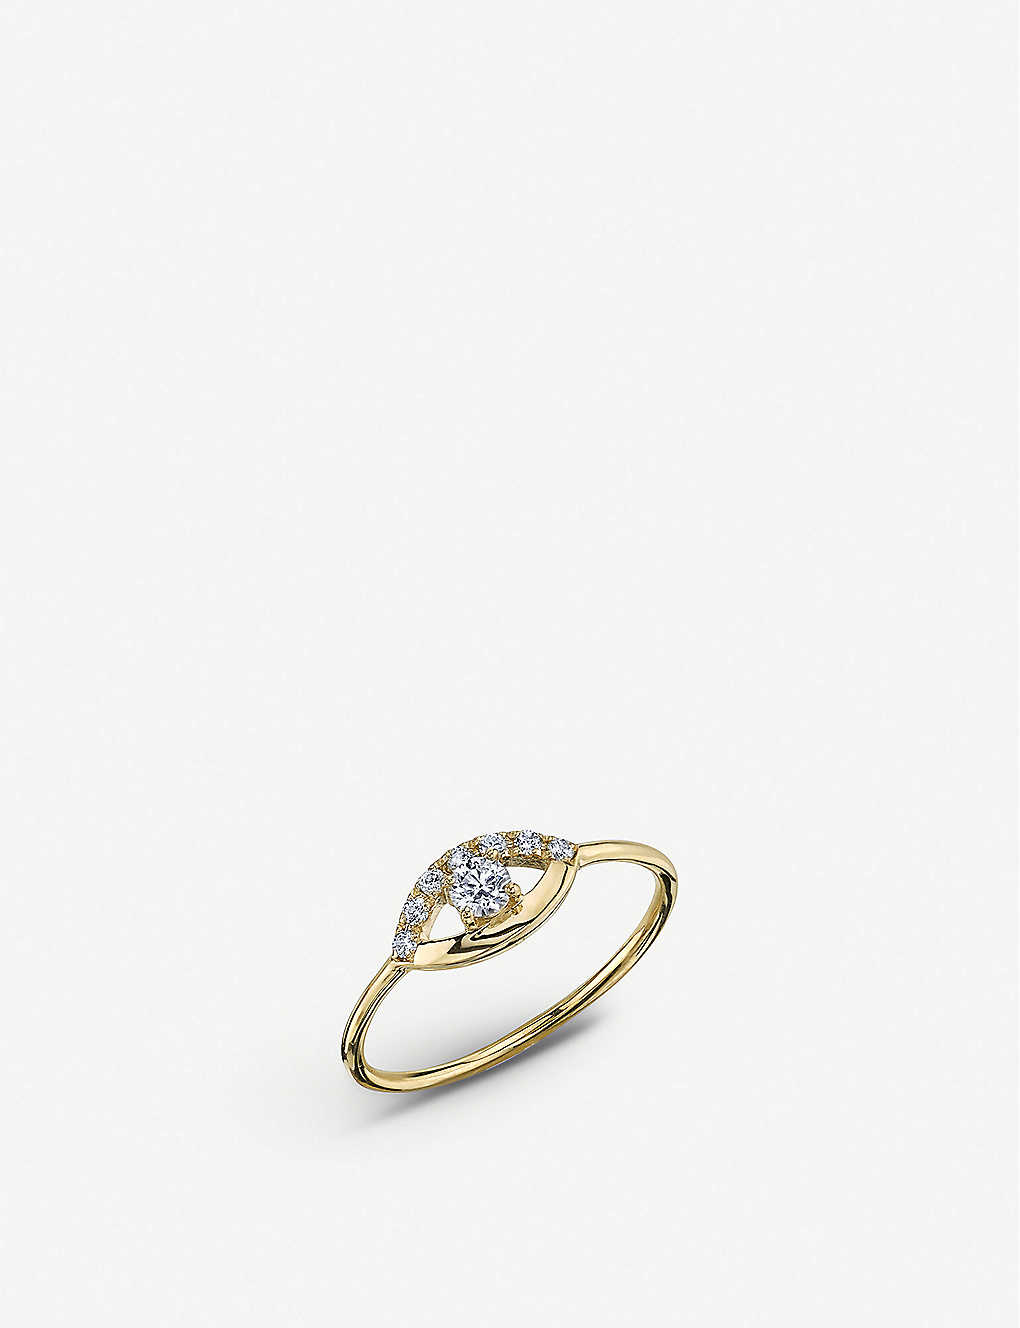 THE ALKEMISTRY: Sydney Evan Open Eye 14ct yellow gold and diamond ring